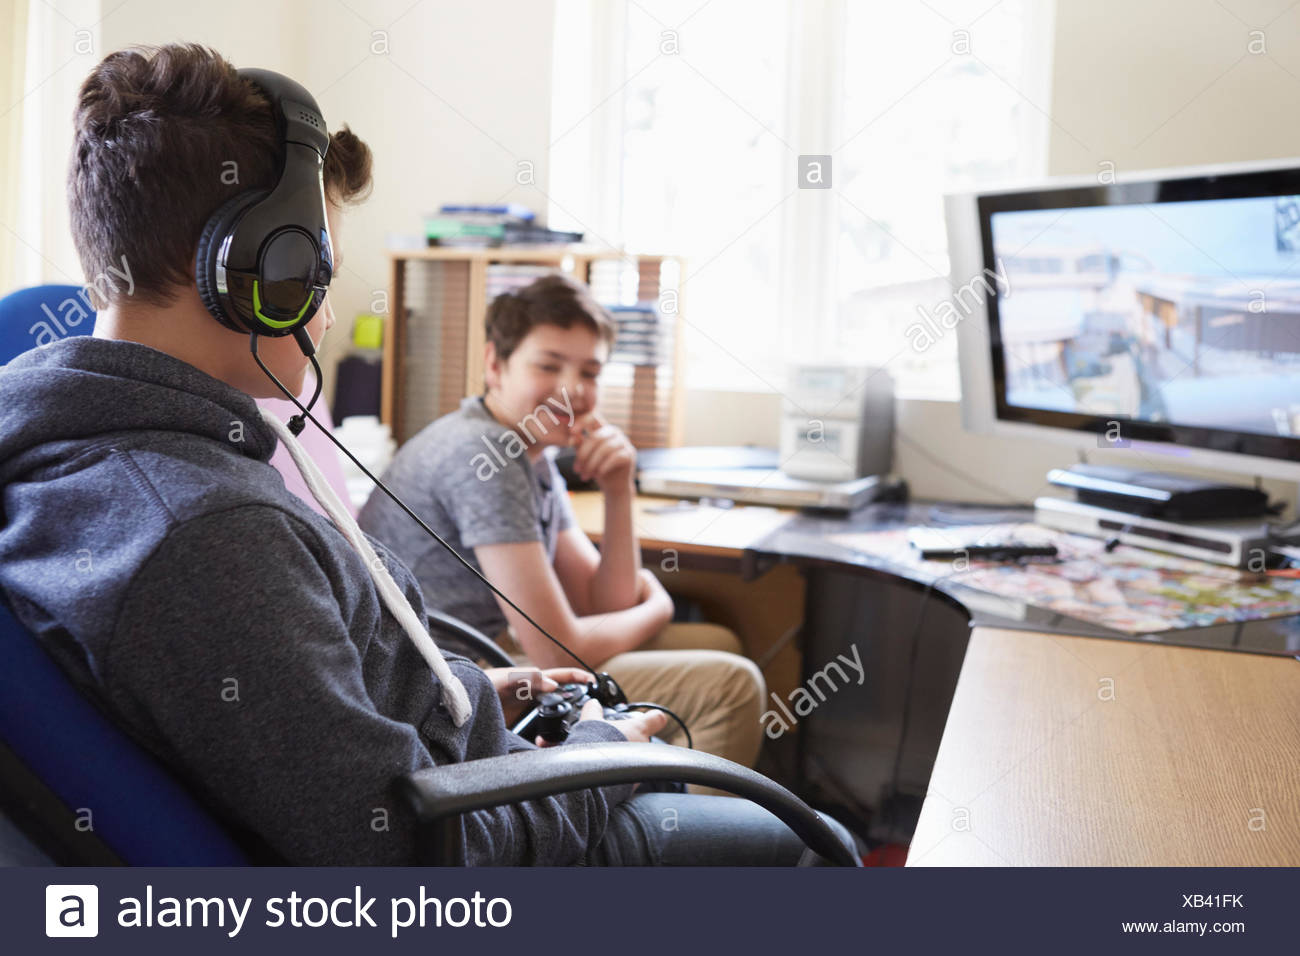 Two boys playing on computer game - Stock Image